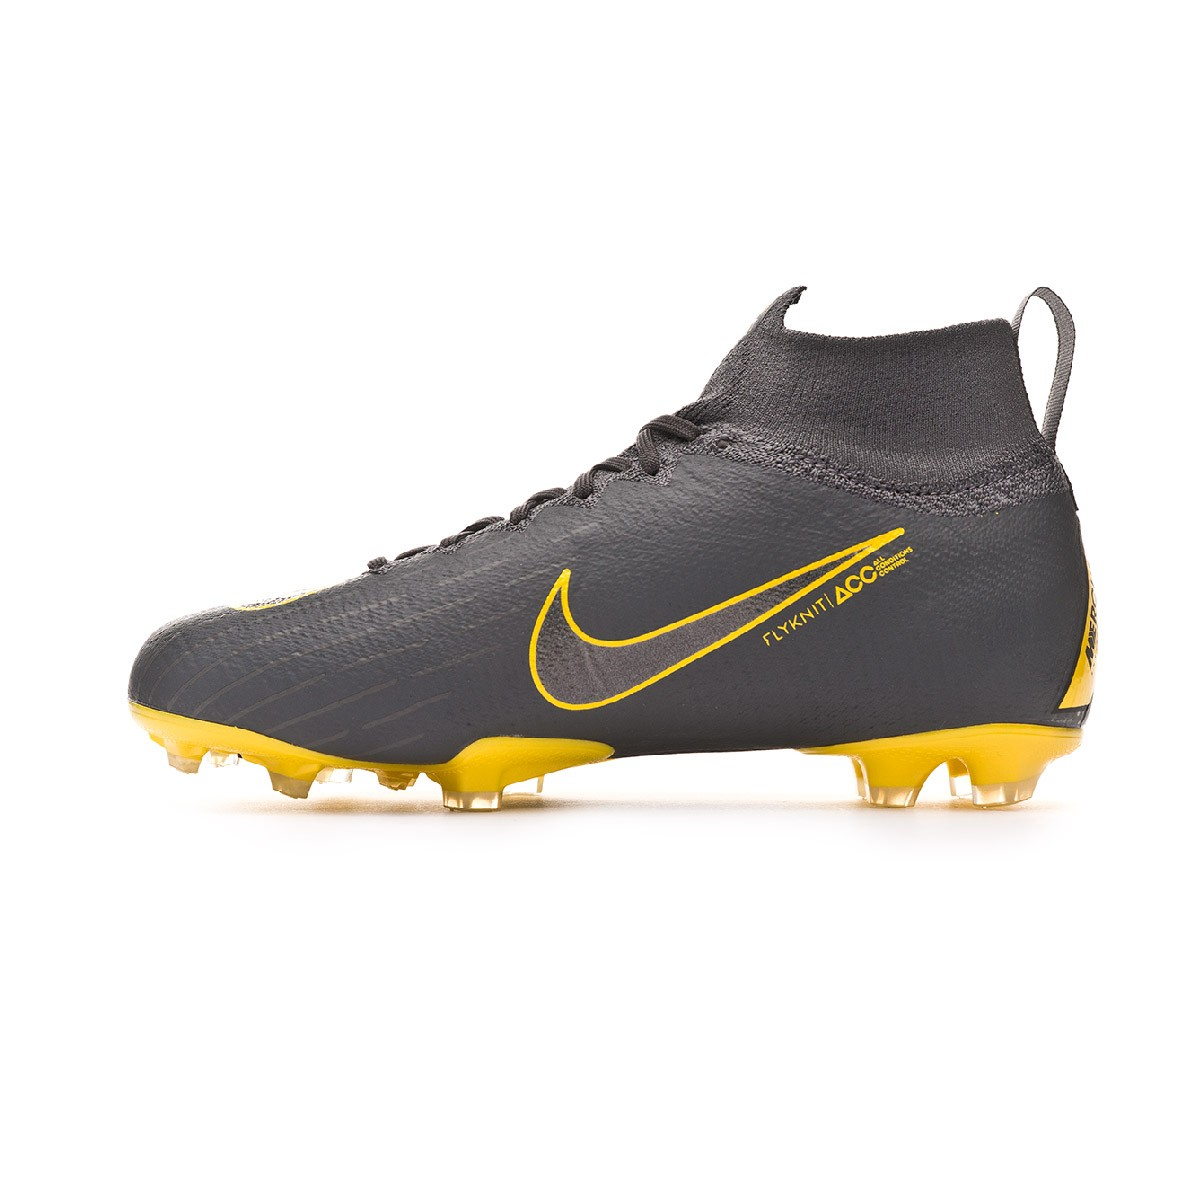 Bota Nike Mercurial Superfly VI Elite FG Niño